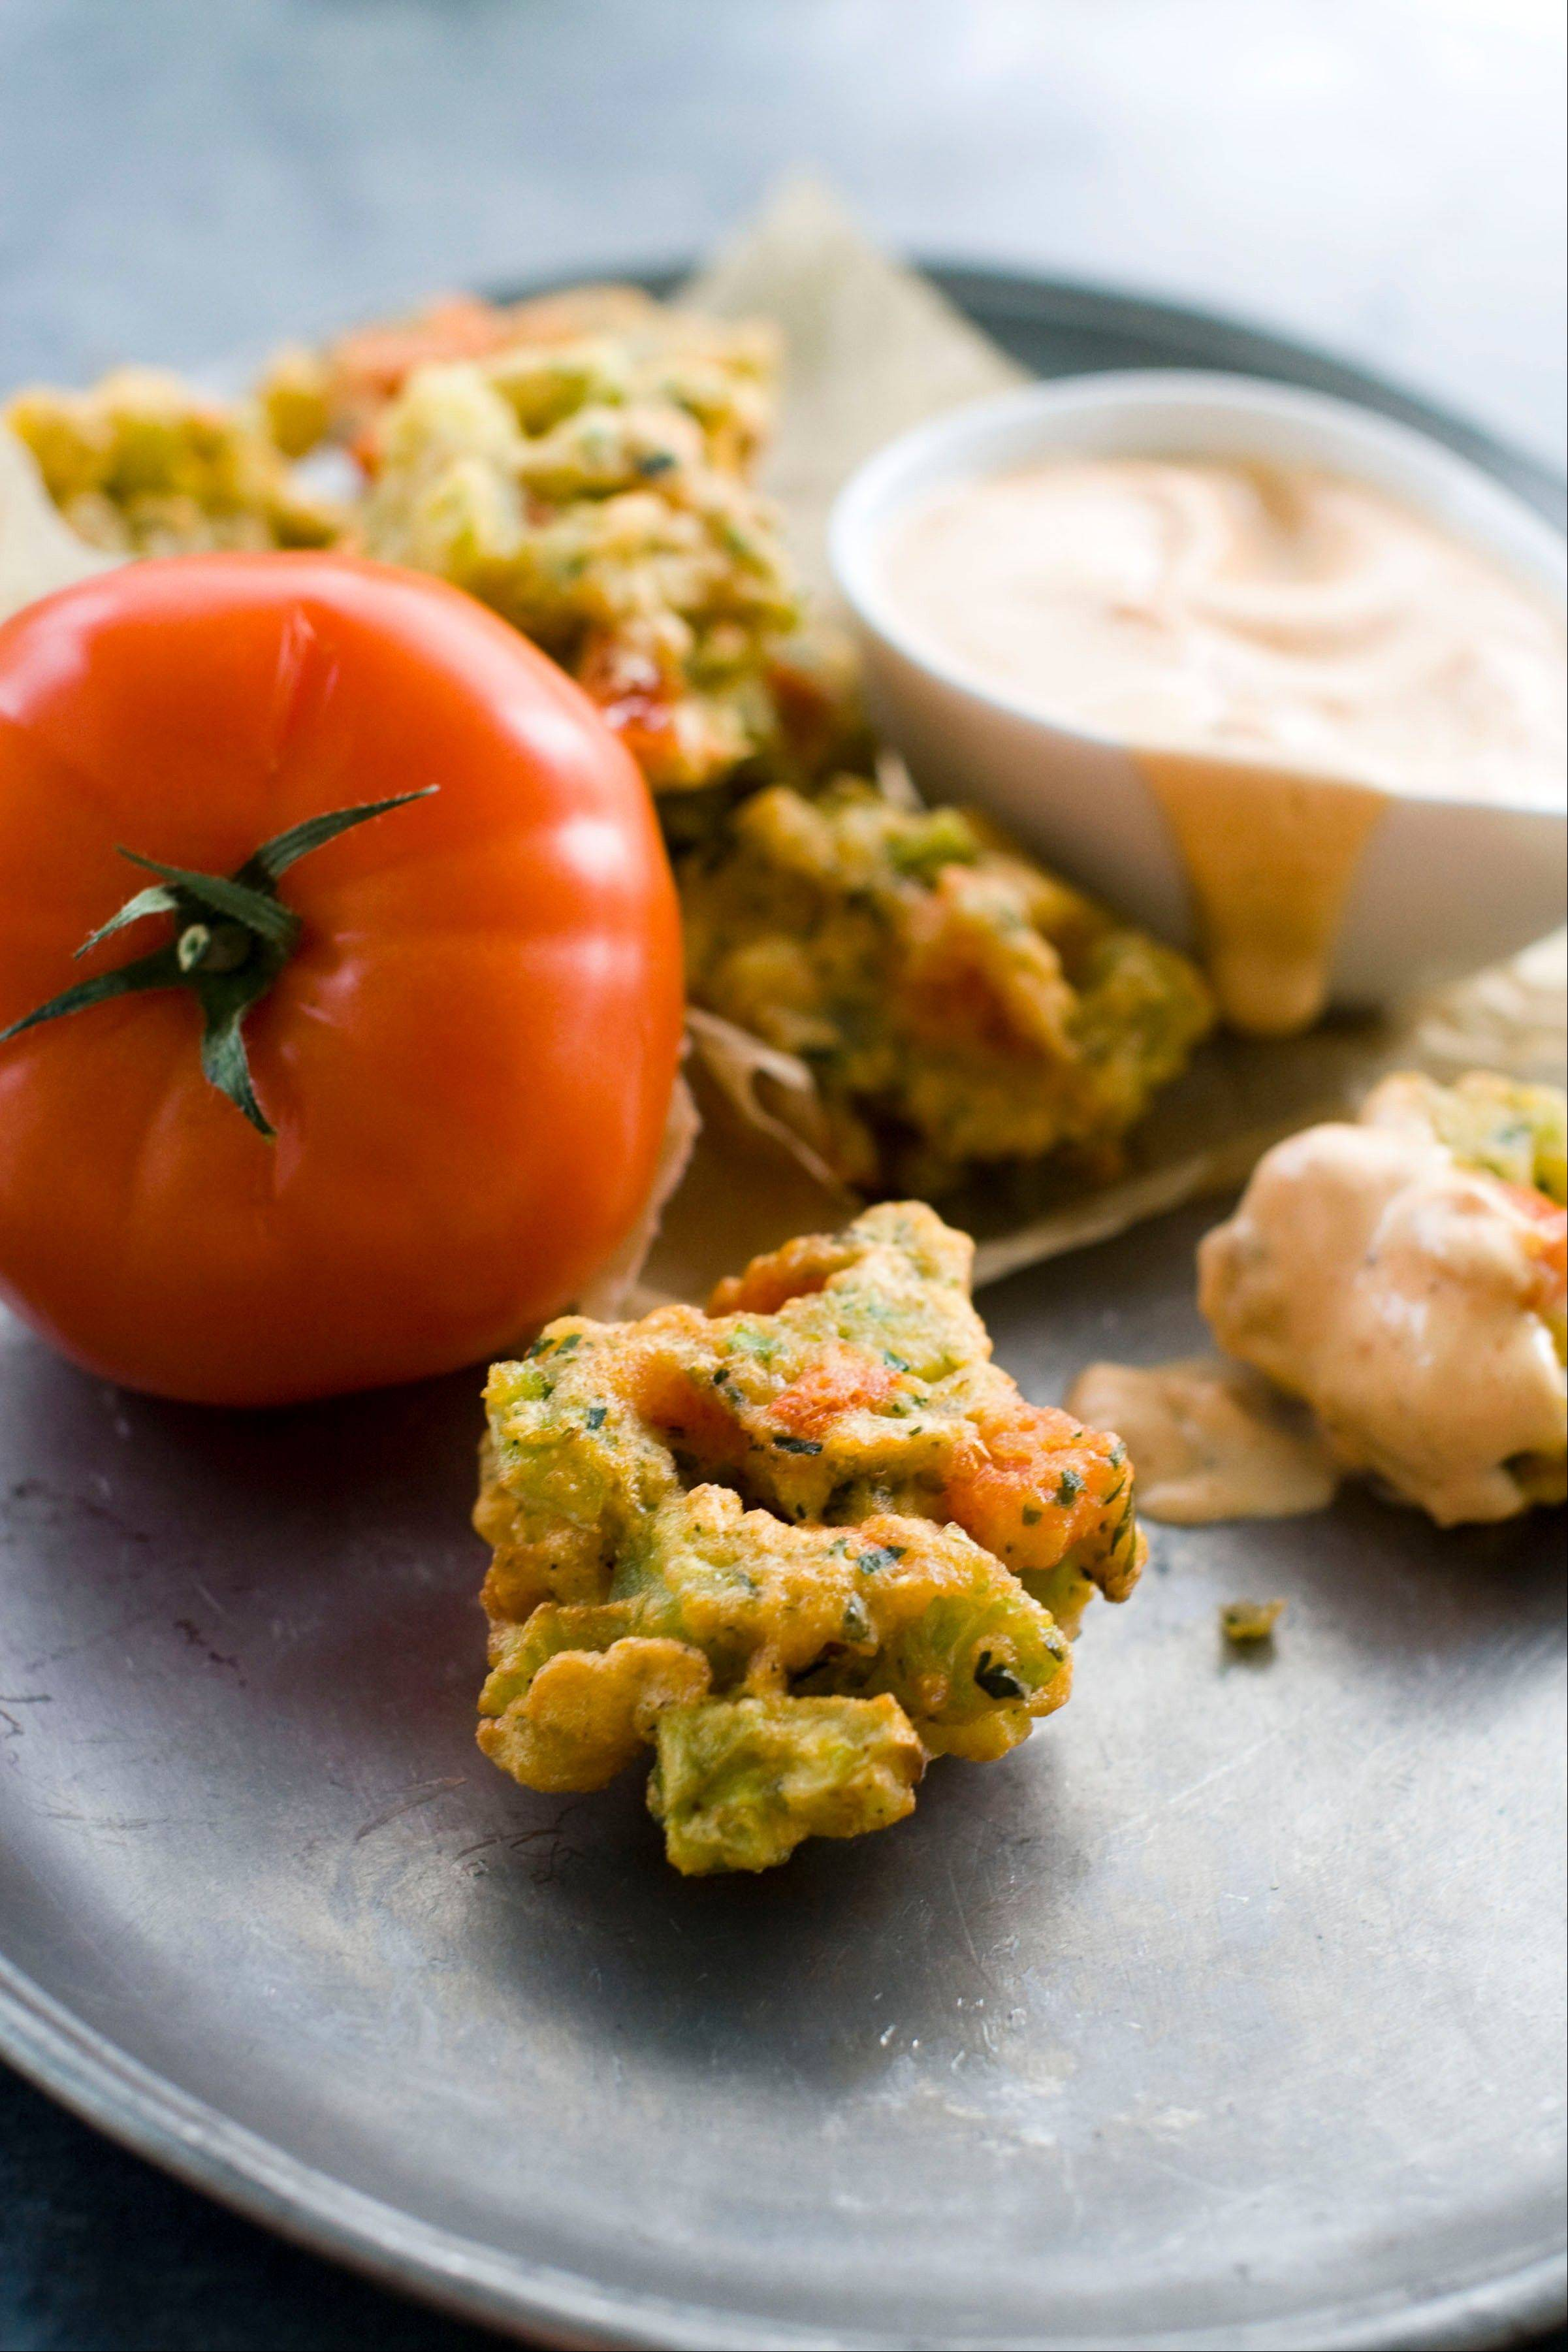 Serve these tomato fritters with prepared mayonnaise.